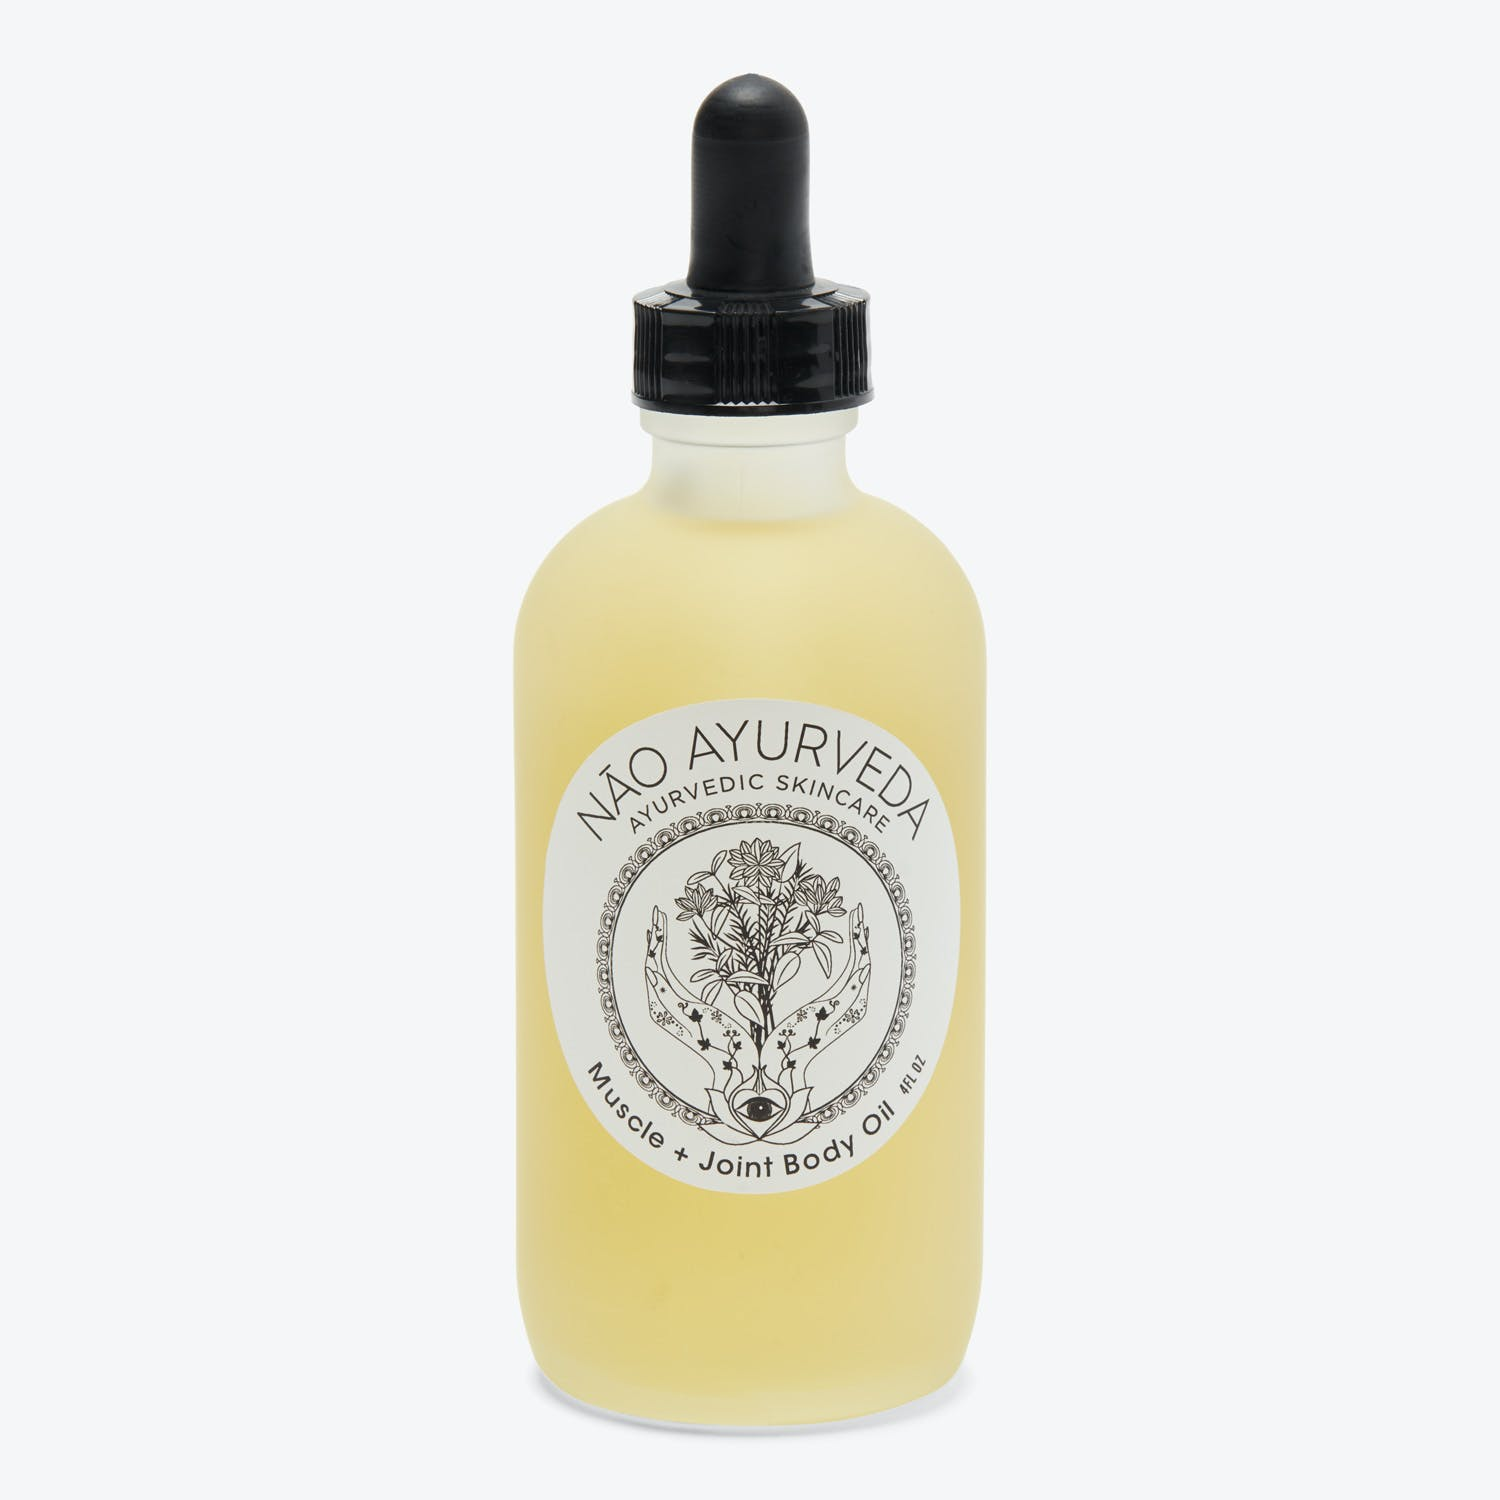 Nao Ayurveda Muscle & Joint Body Oil